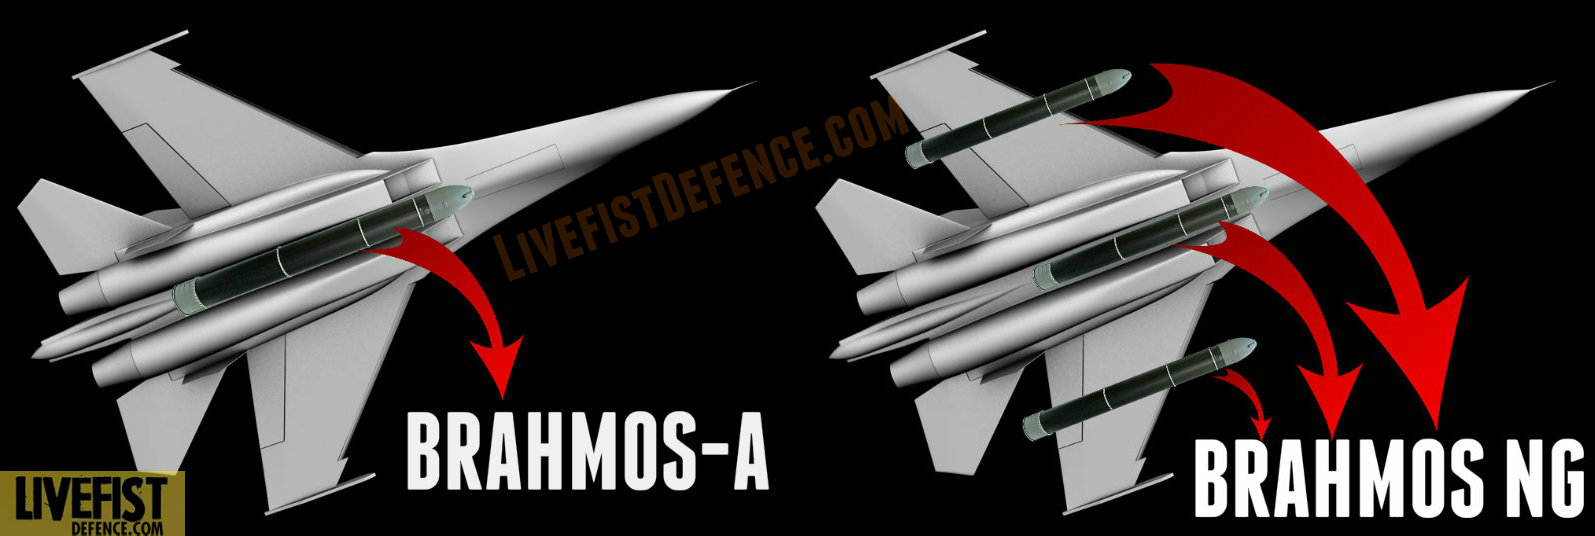 BrahMos Missile in Indian Armed Forces - Page 4 4426162_original